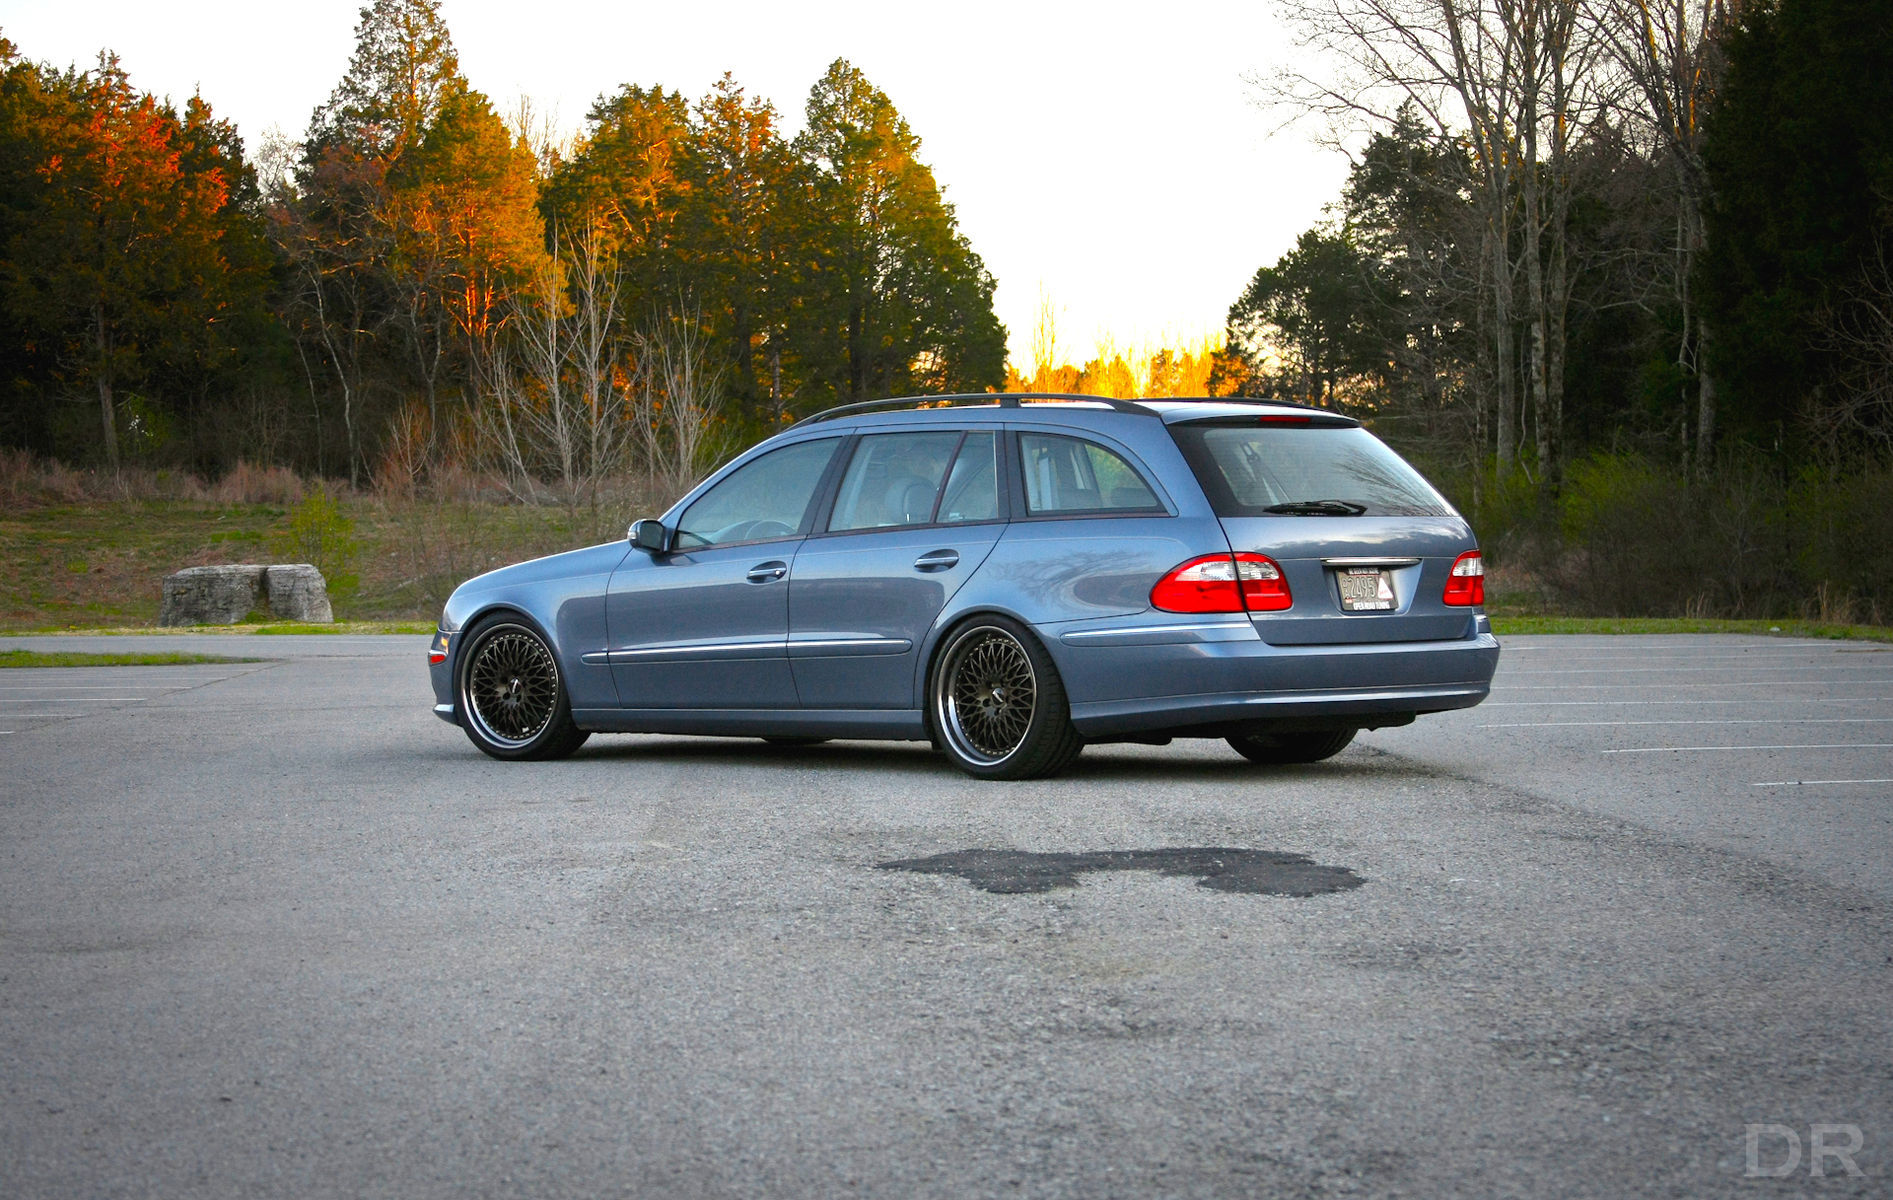 2007 Mercedes-Benz E-Class | Open Road Tuning E500 Wagon on Forgeline LS3 Wheels